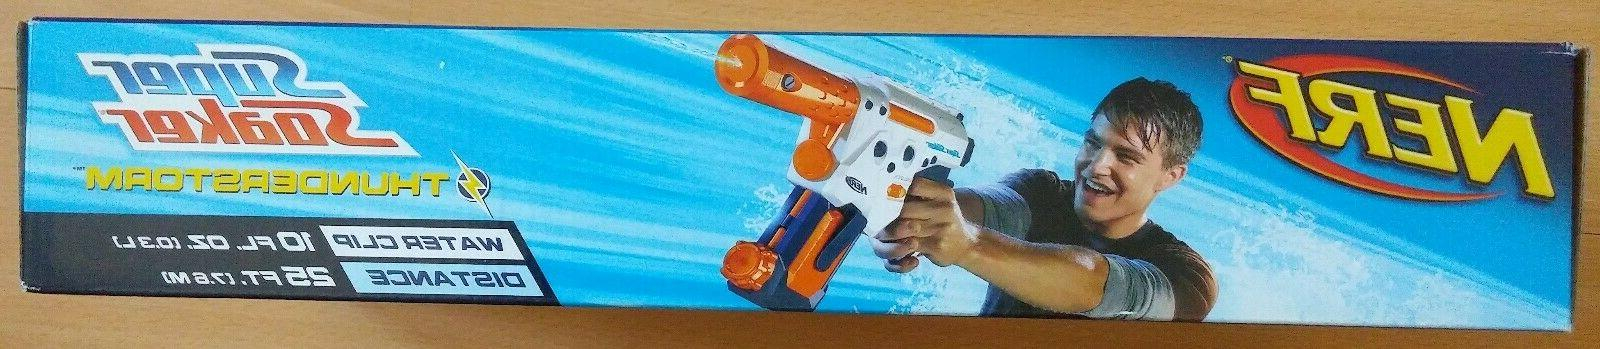 Nerf Triad Pistol Of 2 Mini Micro Blaster